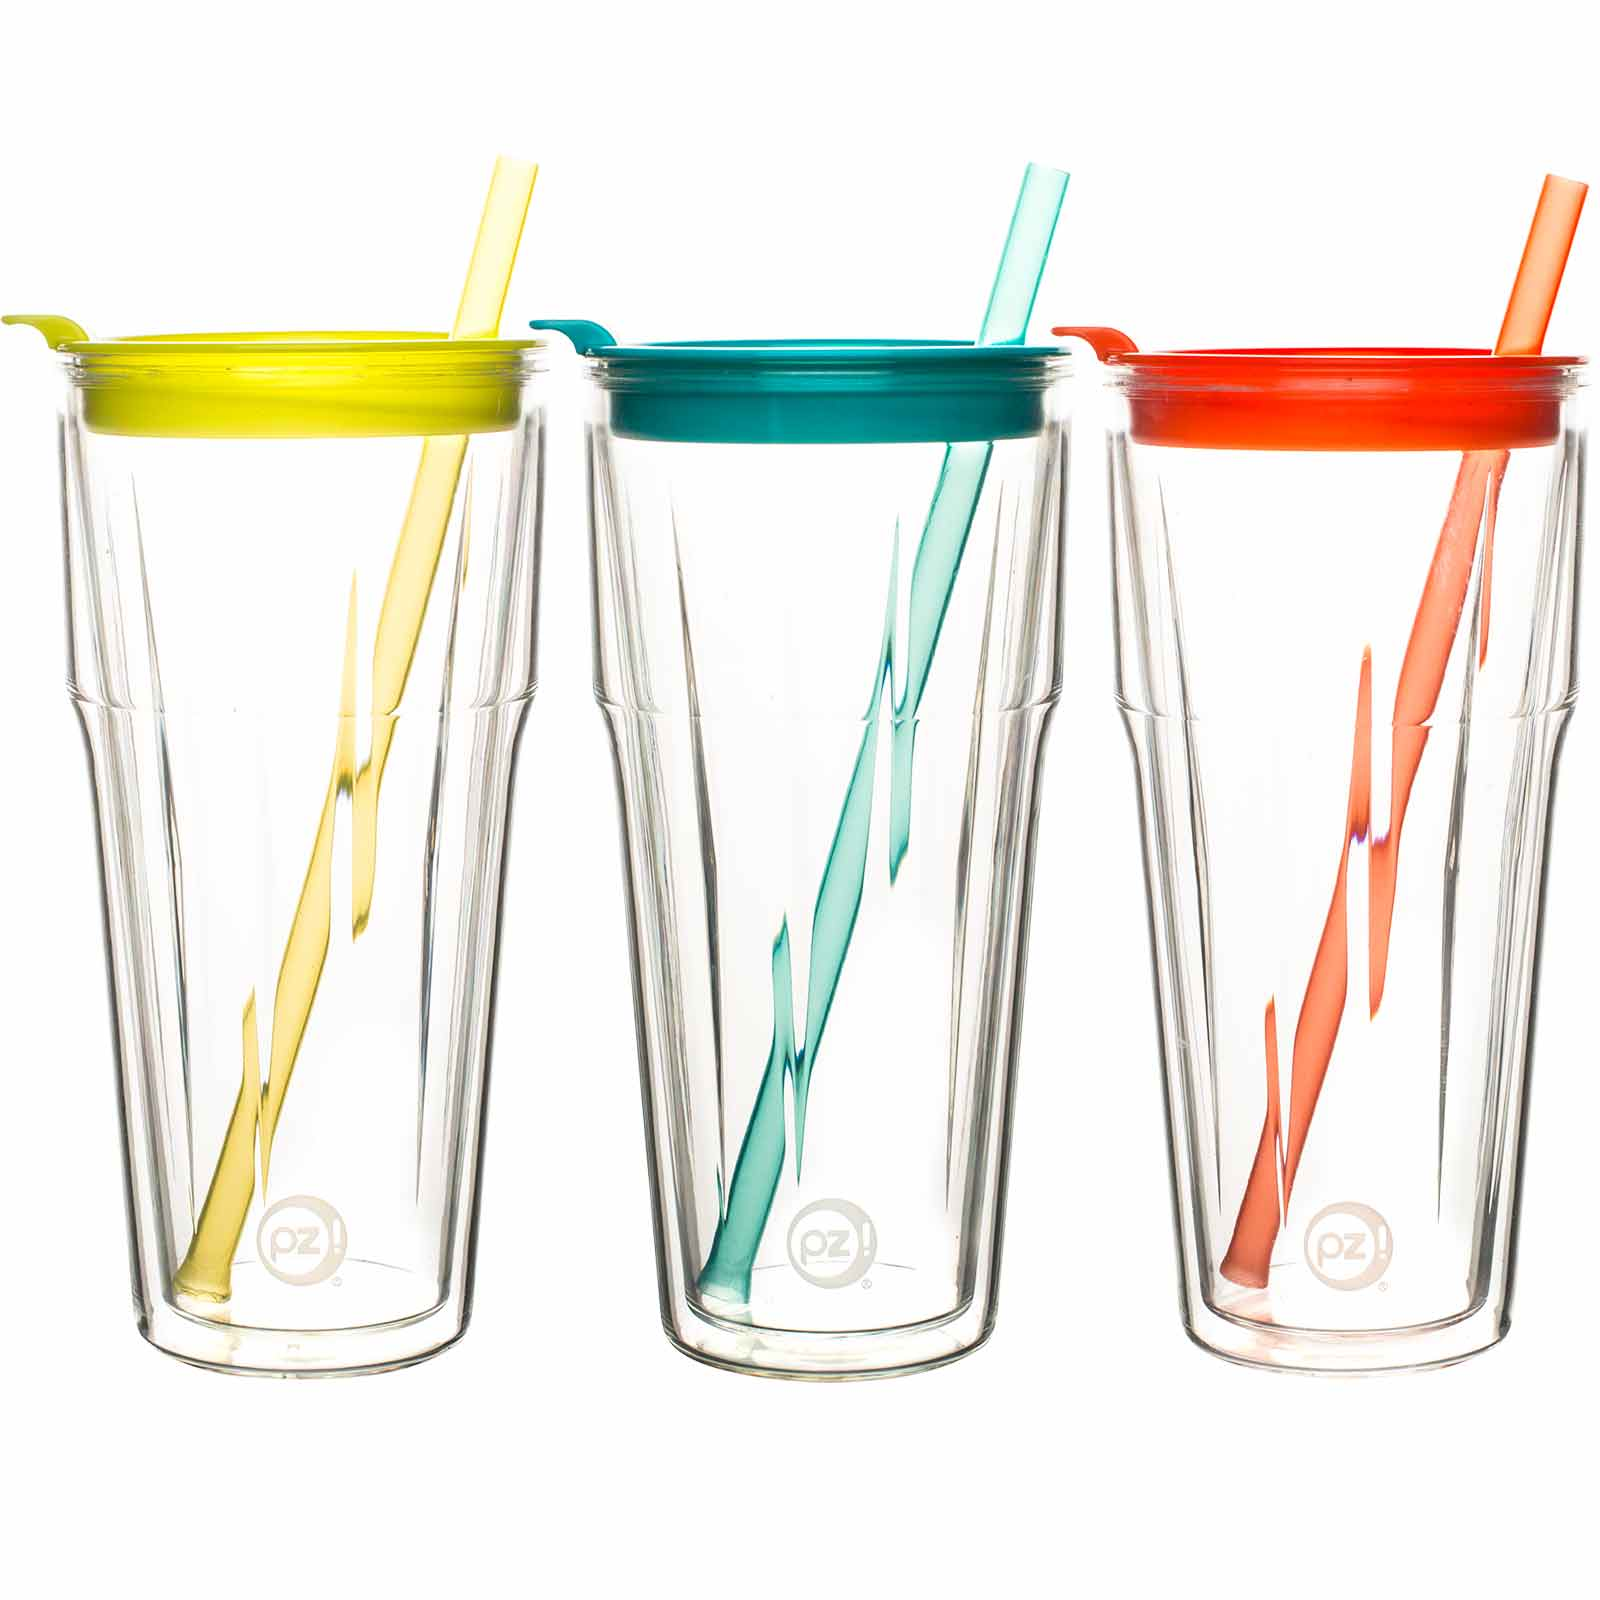 Replacement Straws for Gem 25oz Tumbler (4-pack)